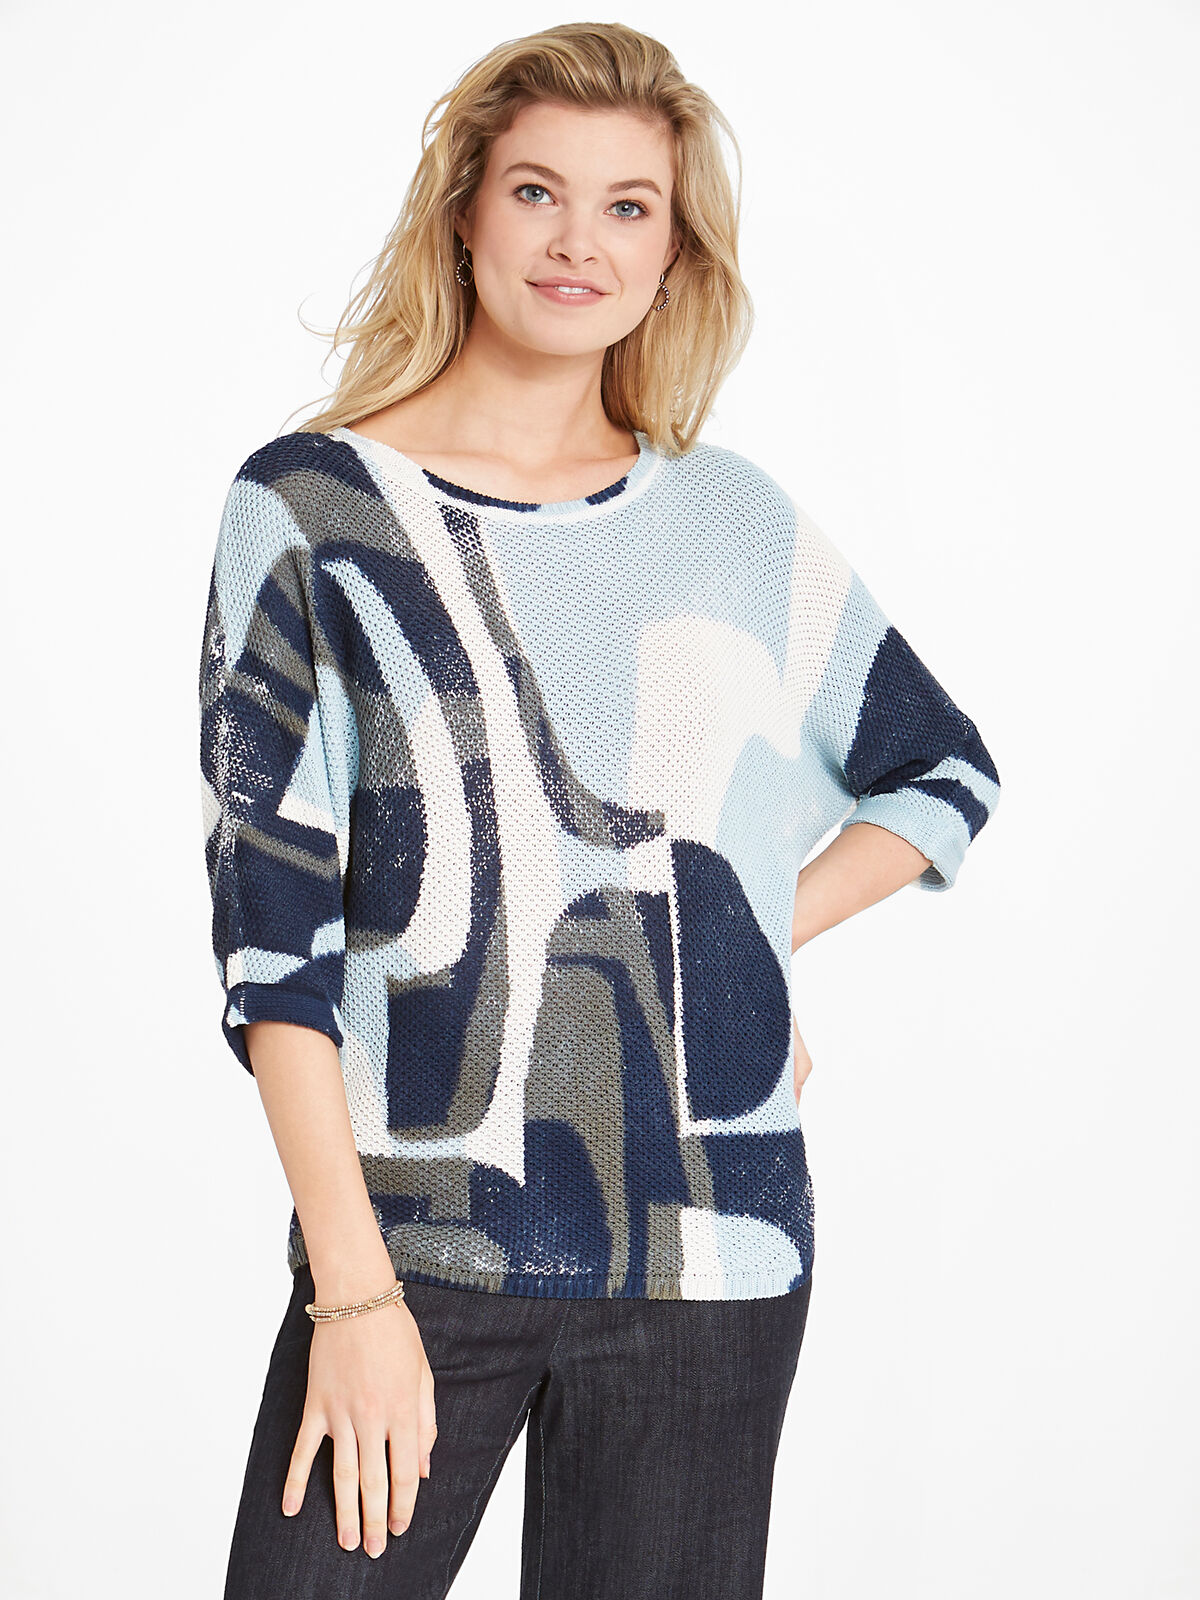 Shape Of Blue Sweater